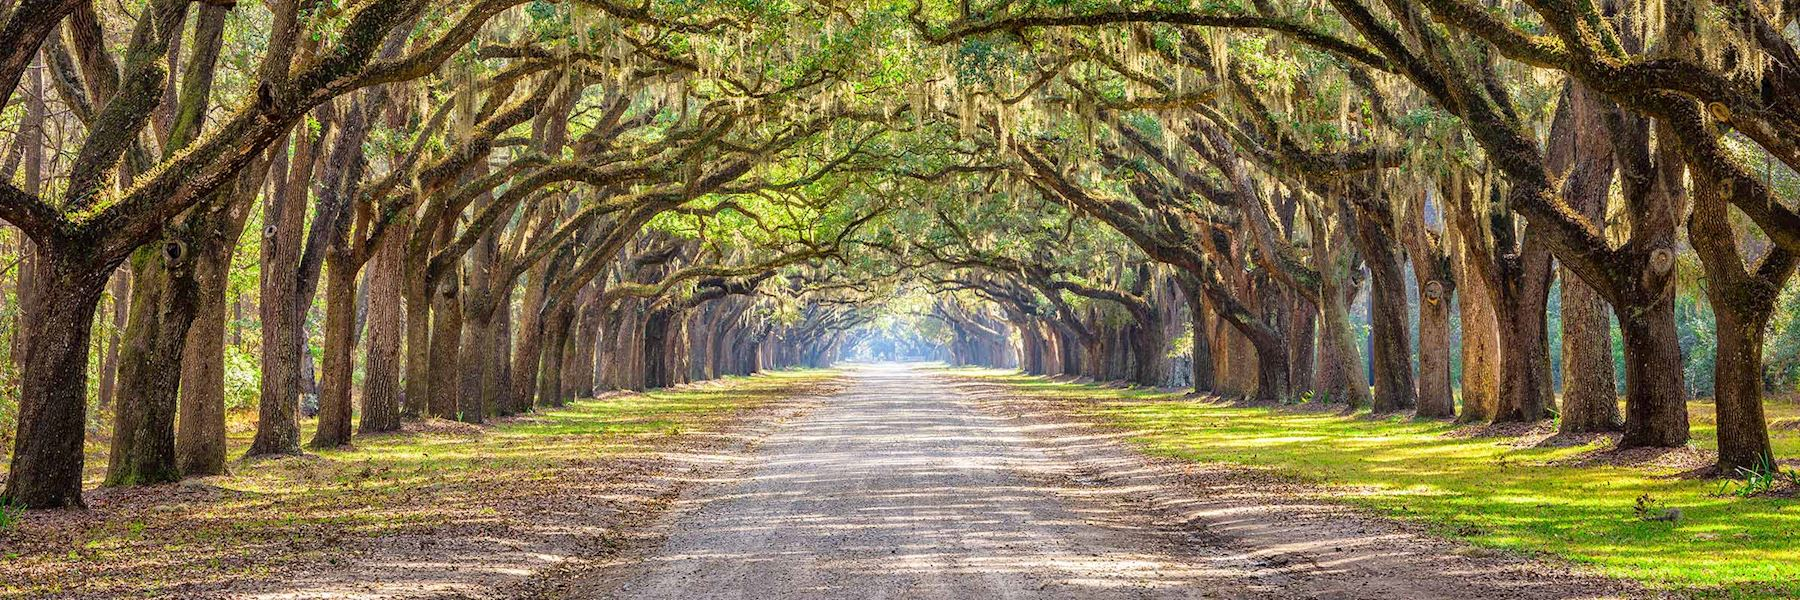 When is the best time to visit the Deep South?